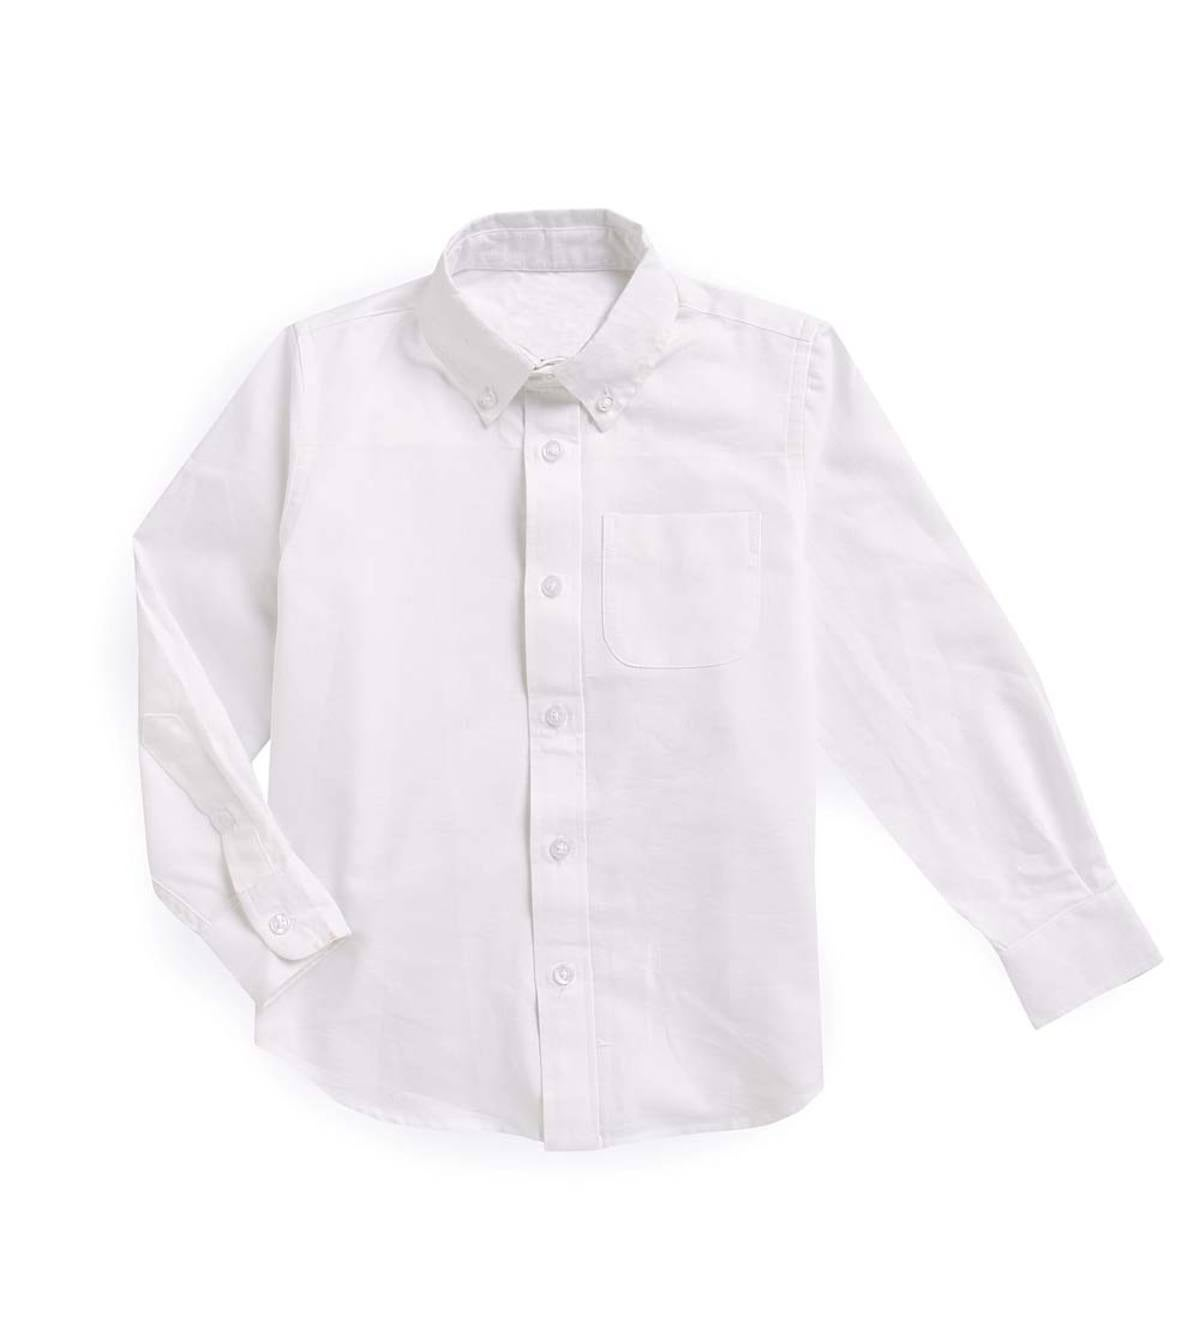 Long Sleeve Oxford Button-Up - White - 4T